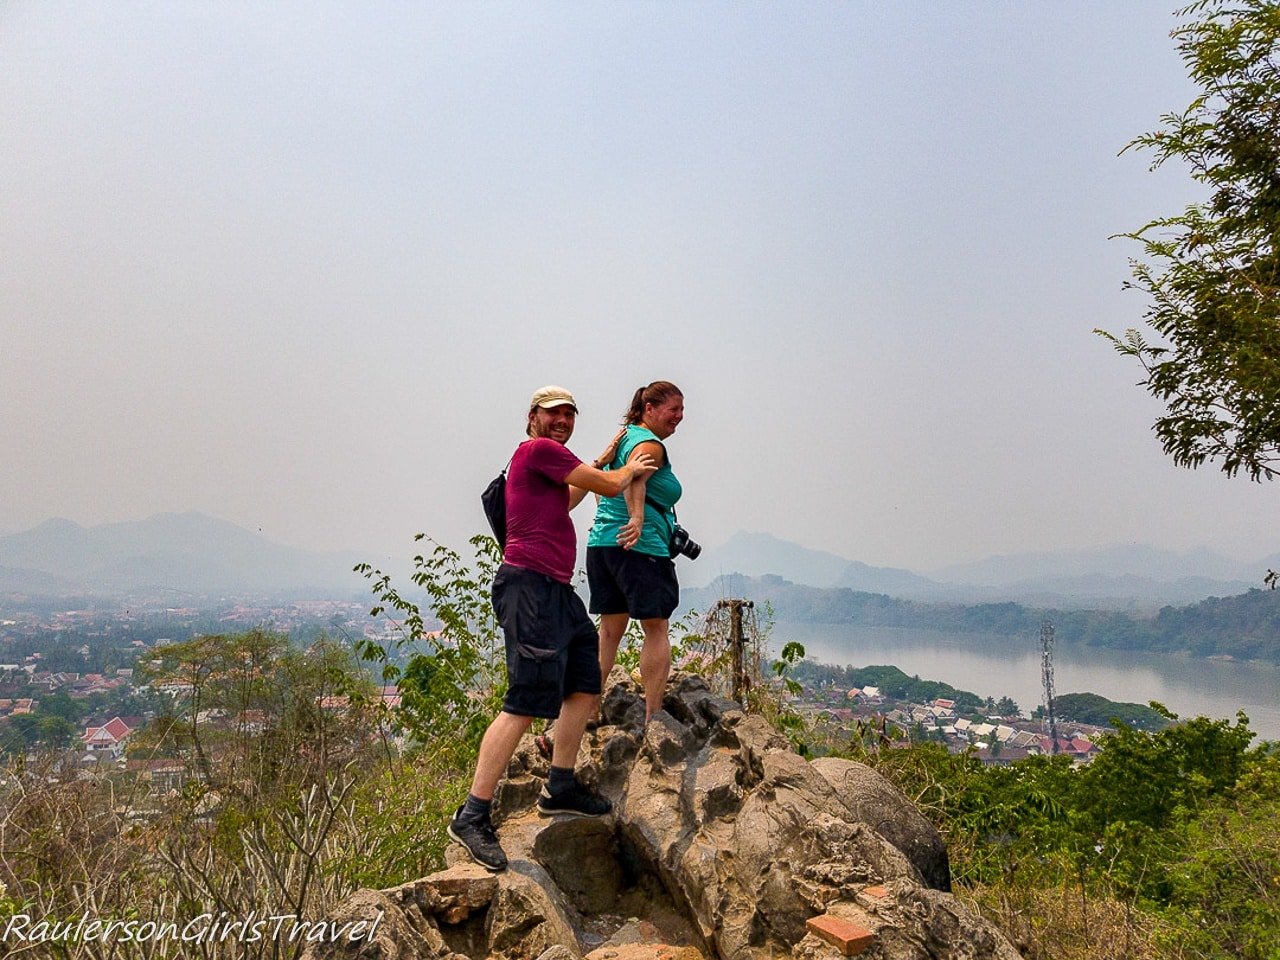 Heather and Skye on top of Mount Phousi in Laos